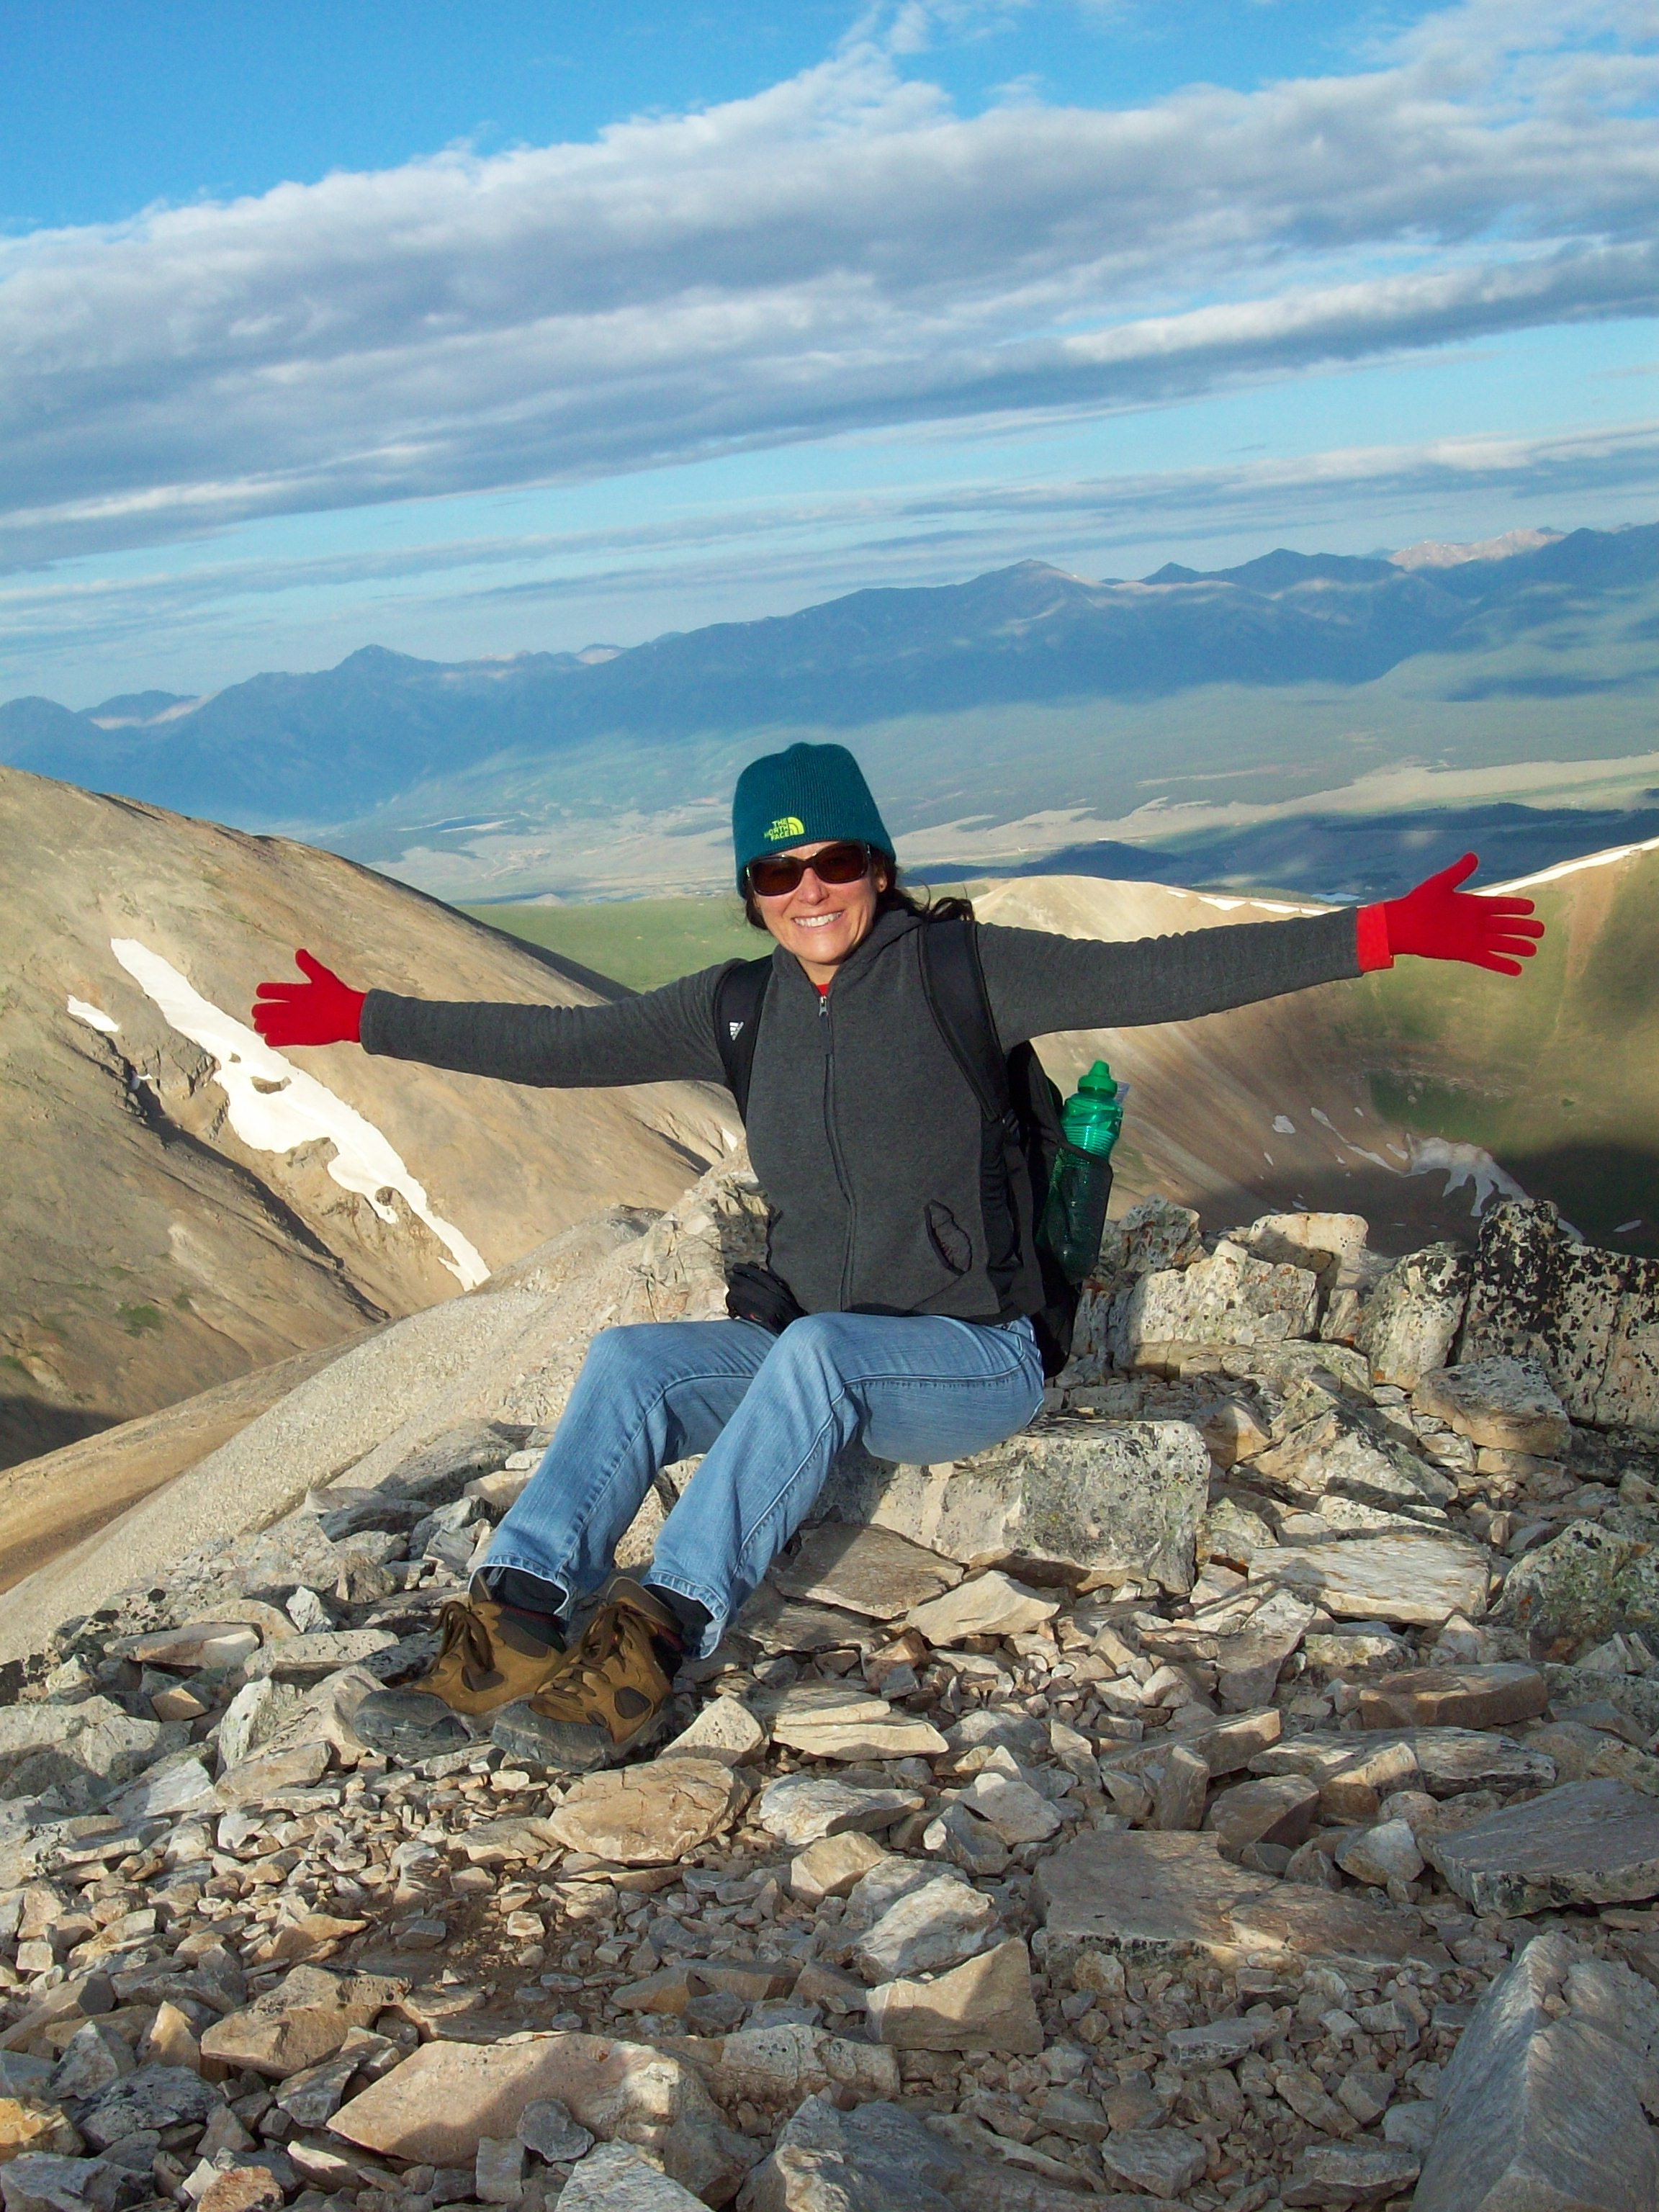 At the top of Mt. Sherman, Colorado, Vilma Reynoso, after a successful climb